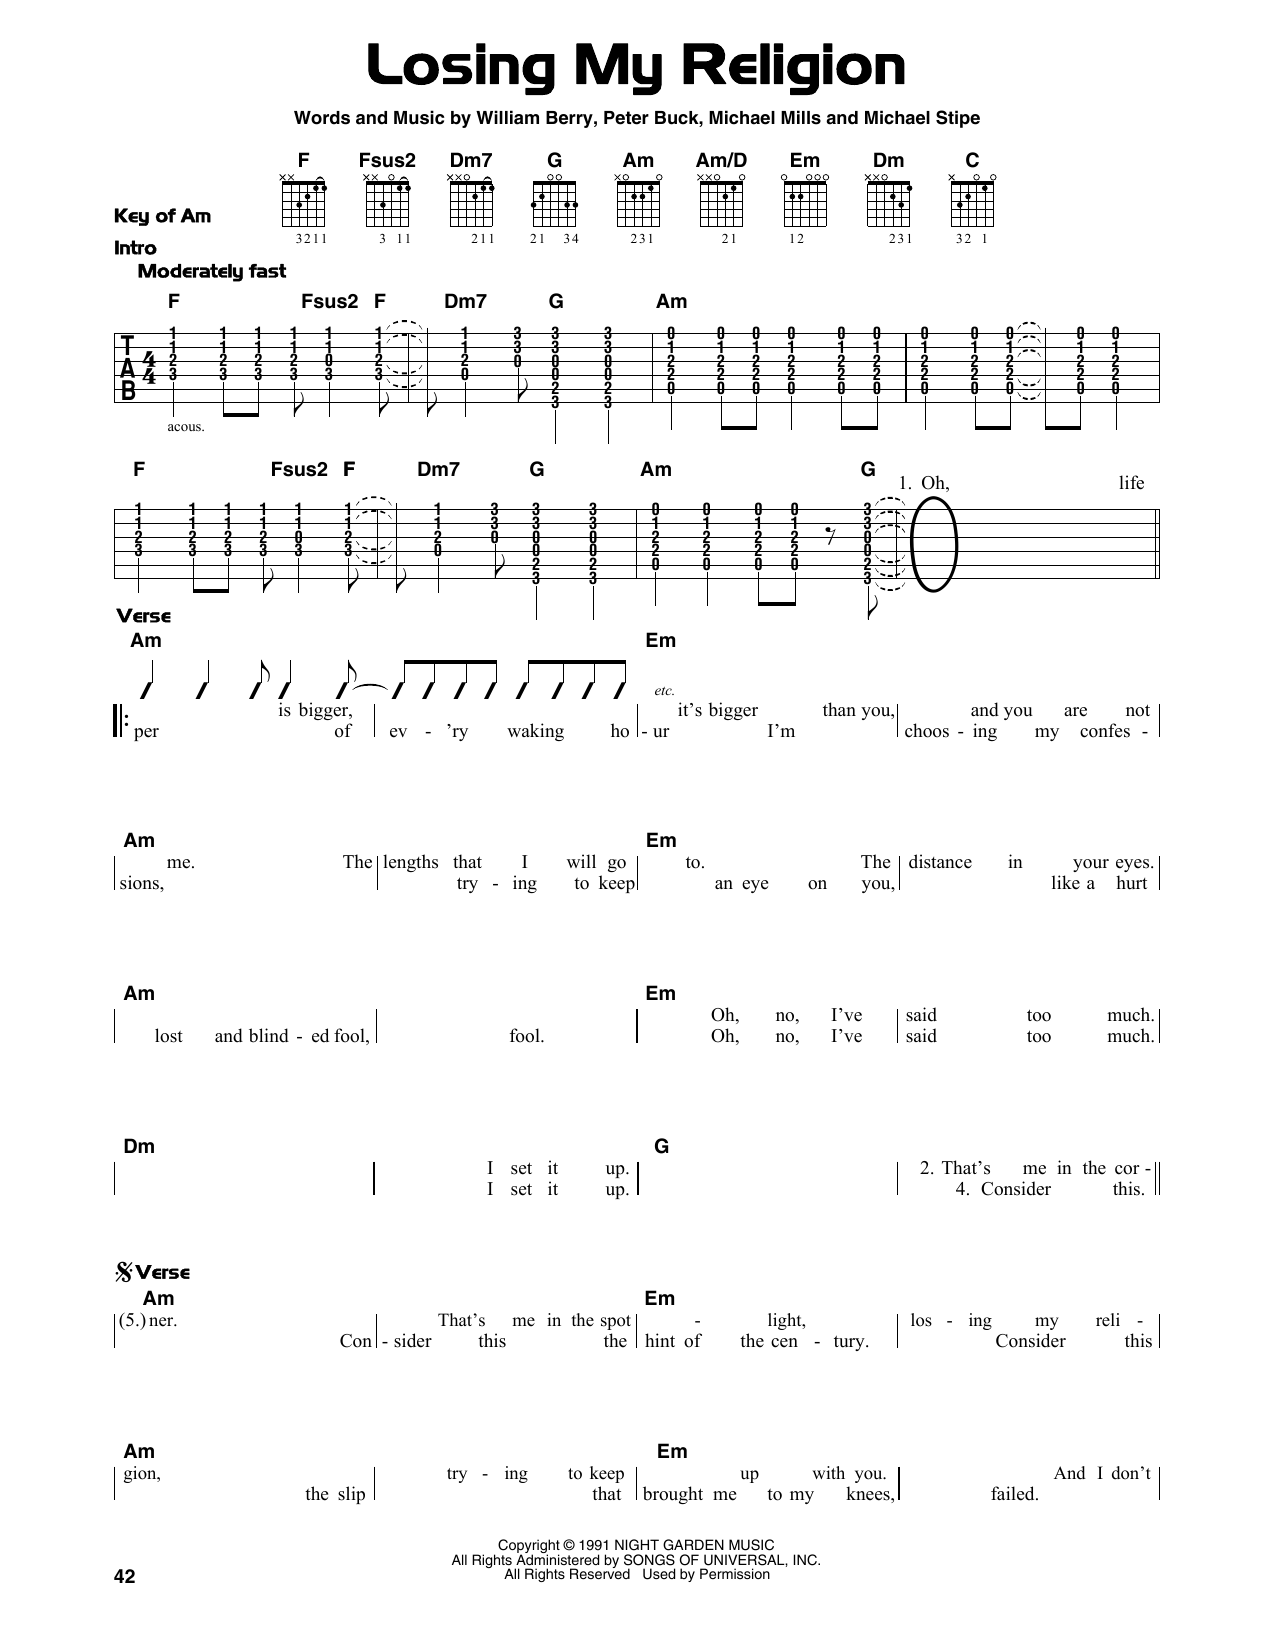 Rem losing my religion sheet music at stantons sheet music format lead sheets hexwebz Images